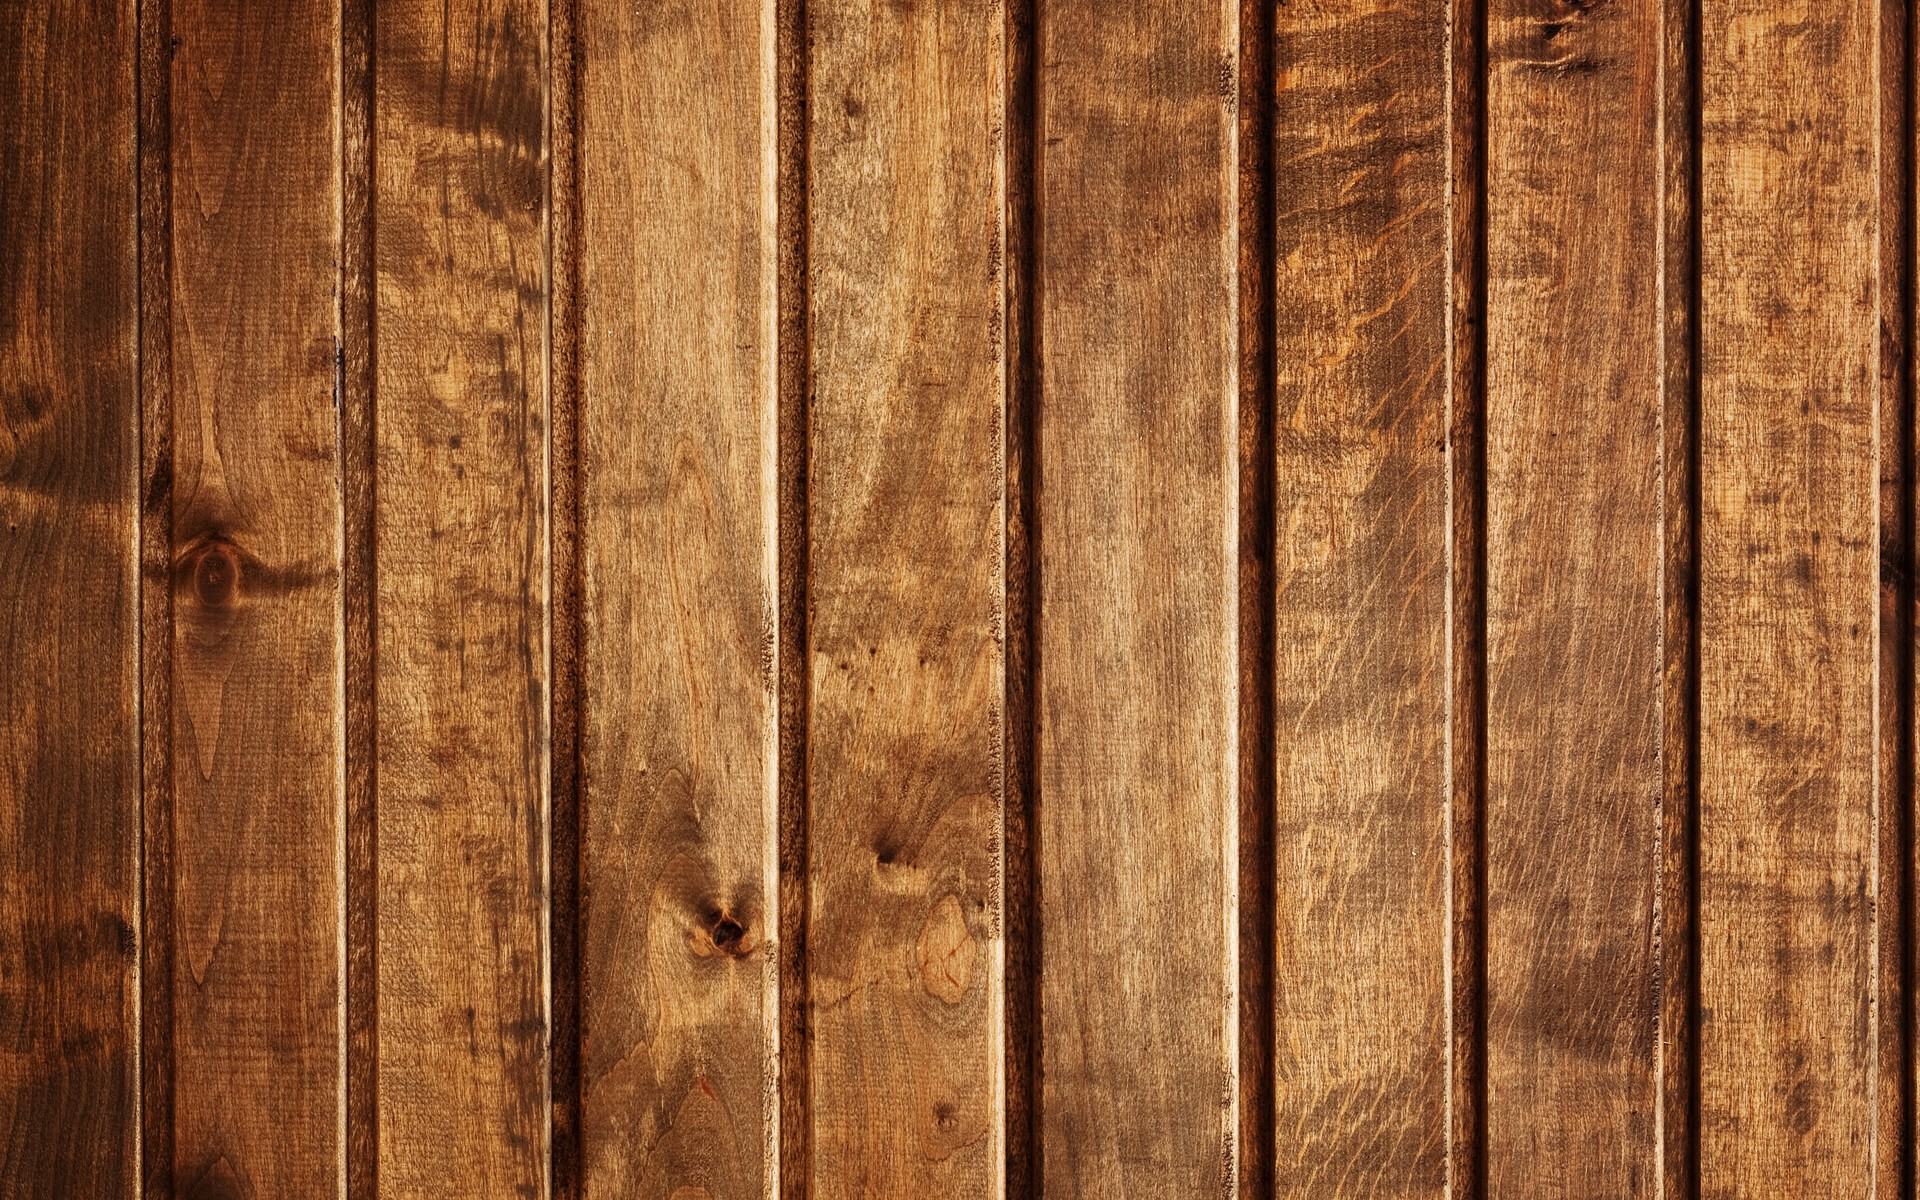 Holzwand Textur Wood Texture Background ① Download Free Full Hd